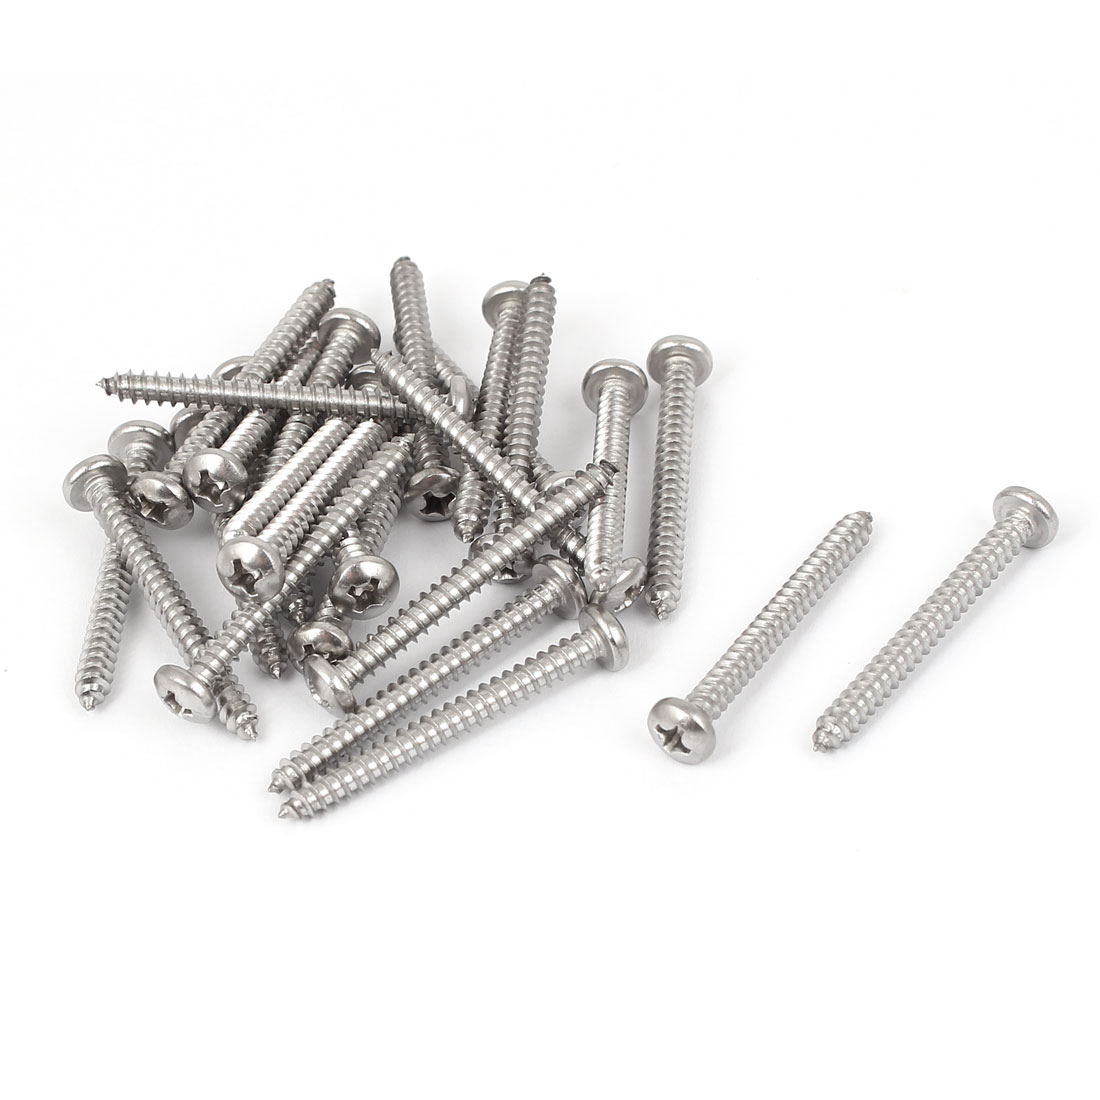 #6 M3.5x35mm Stainless Steel Phillips Round Pan Head Self Tapping Screws 25pcs